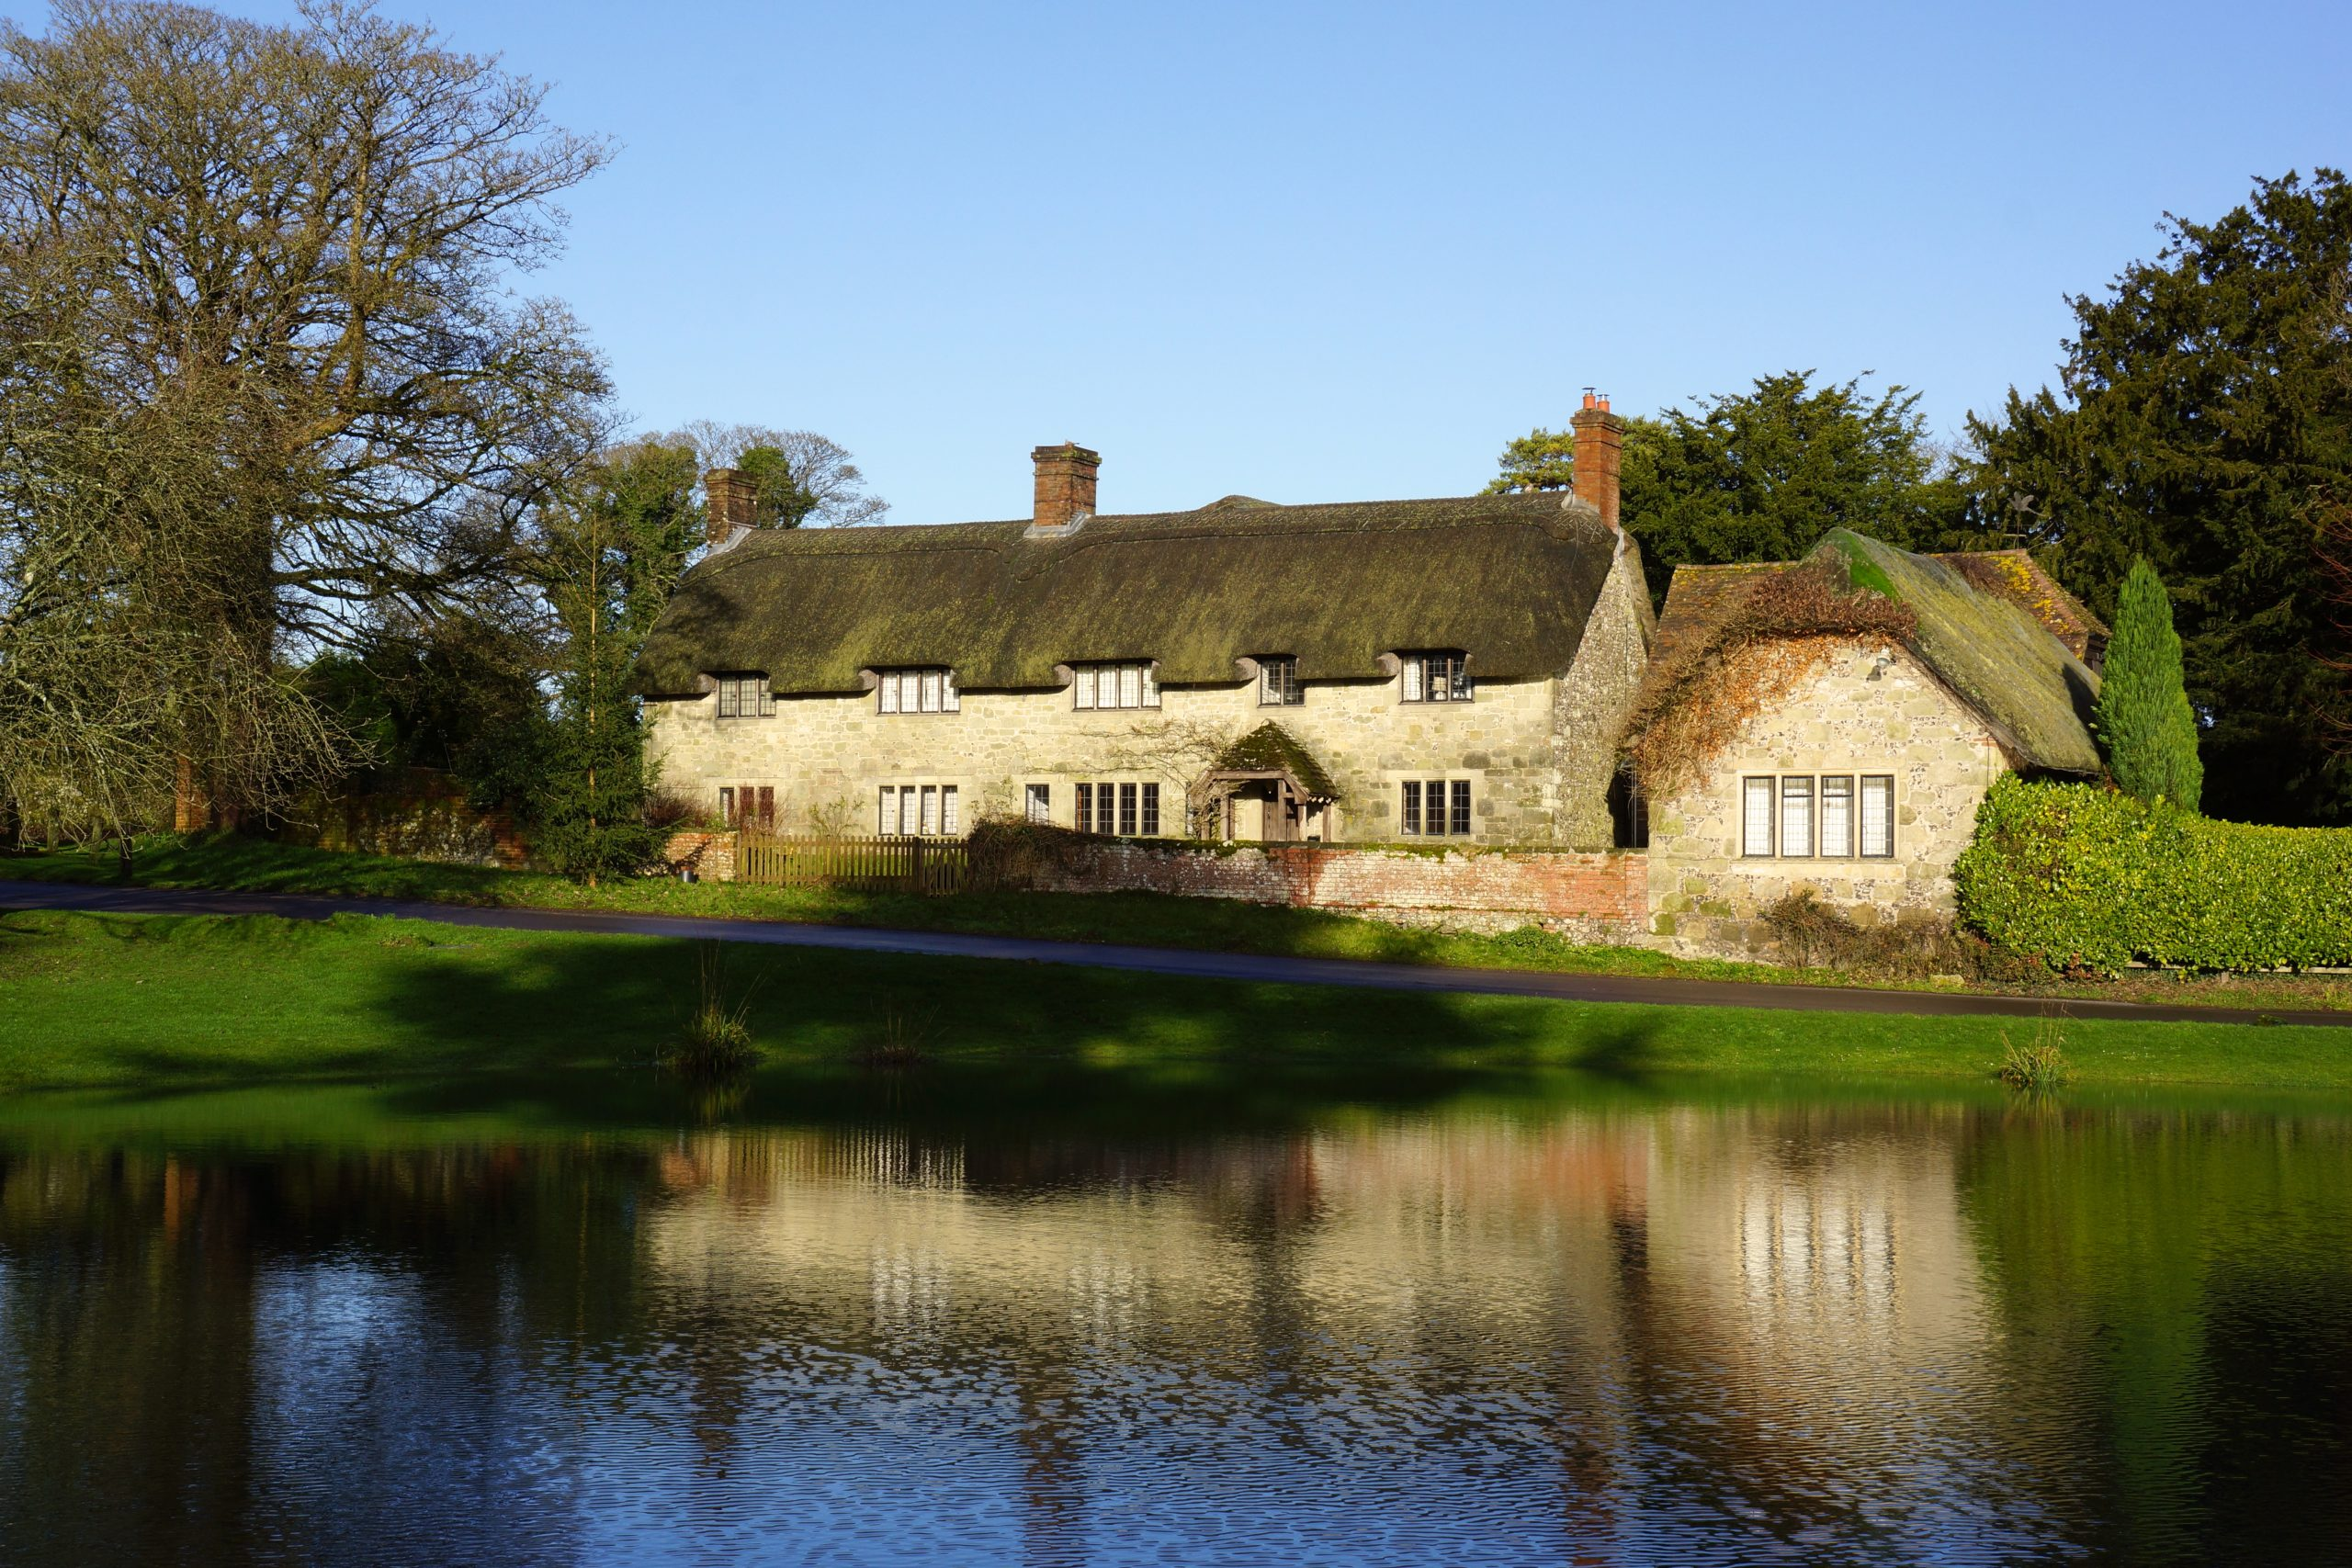 sunday photo this is england � ashmore pond with thatched